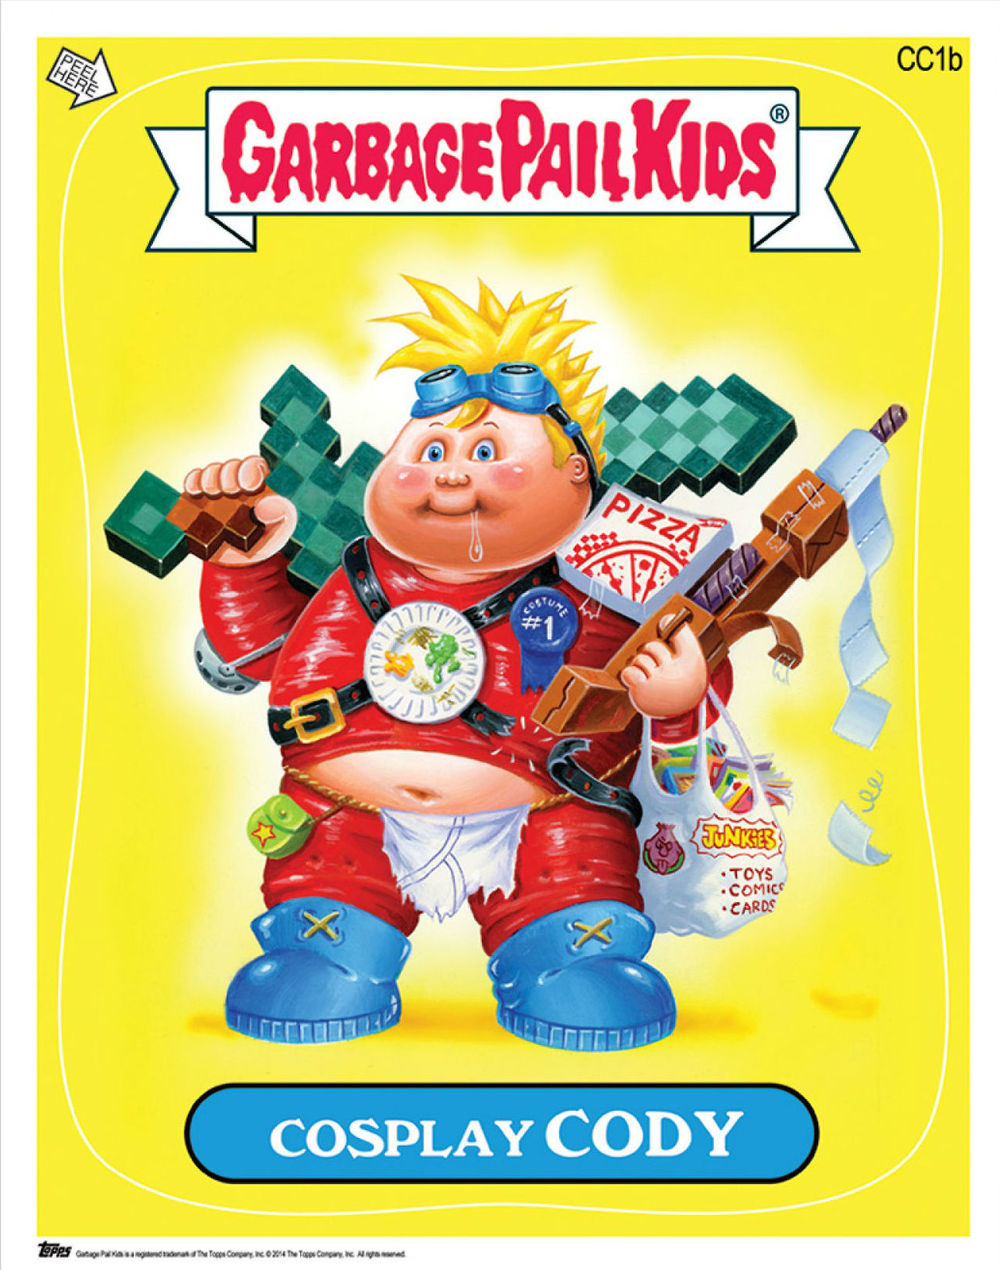 comic-con-exclusive-garbage-pail-kids-card-set2